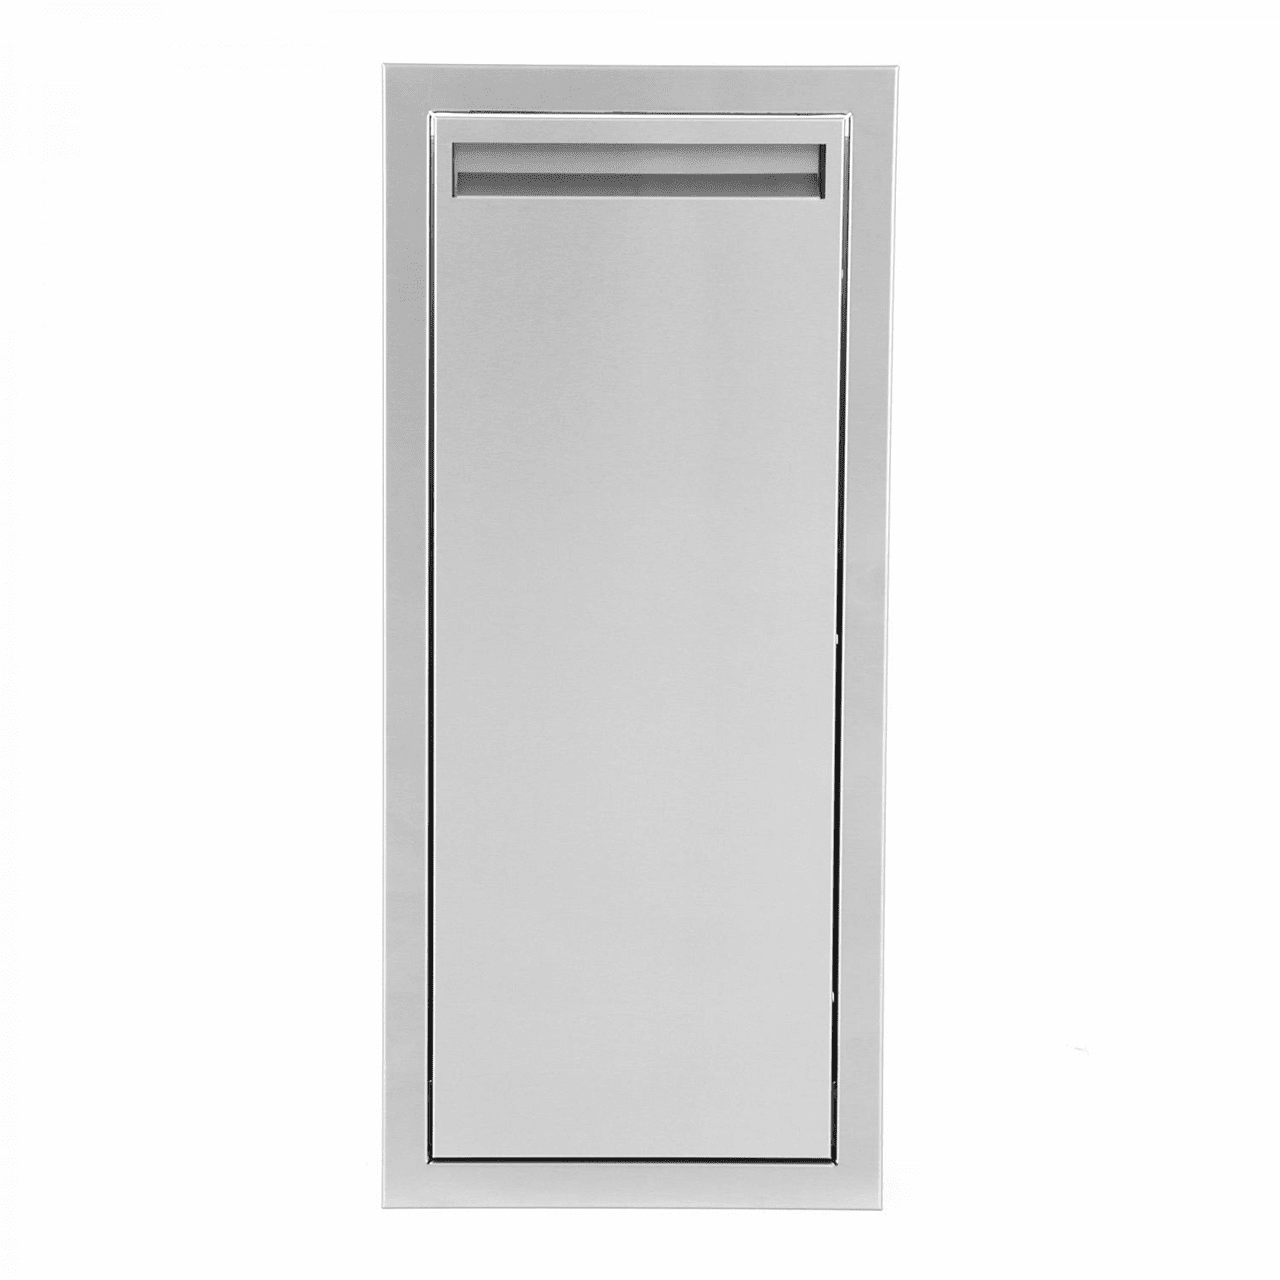 PCM 301 Series Trash Drawer Narrow Stainless Steel